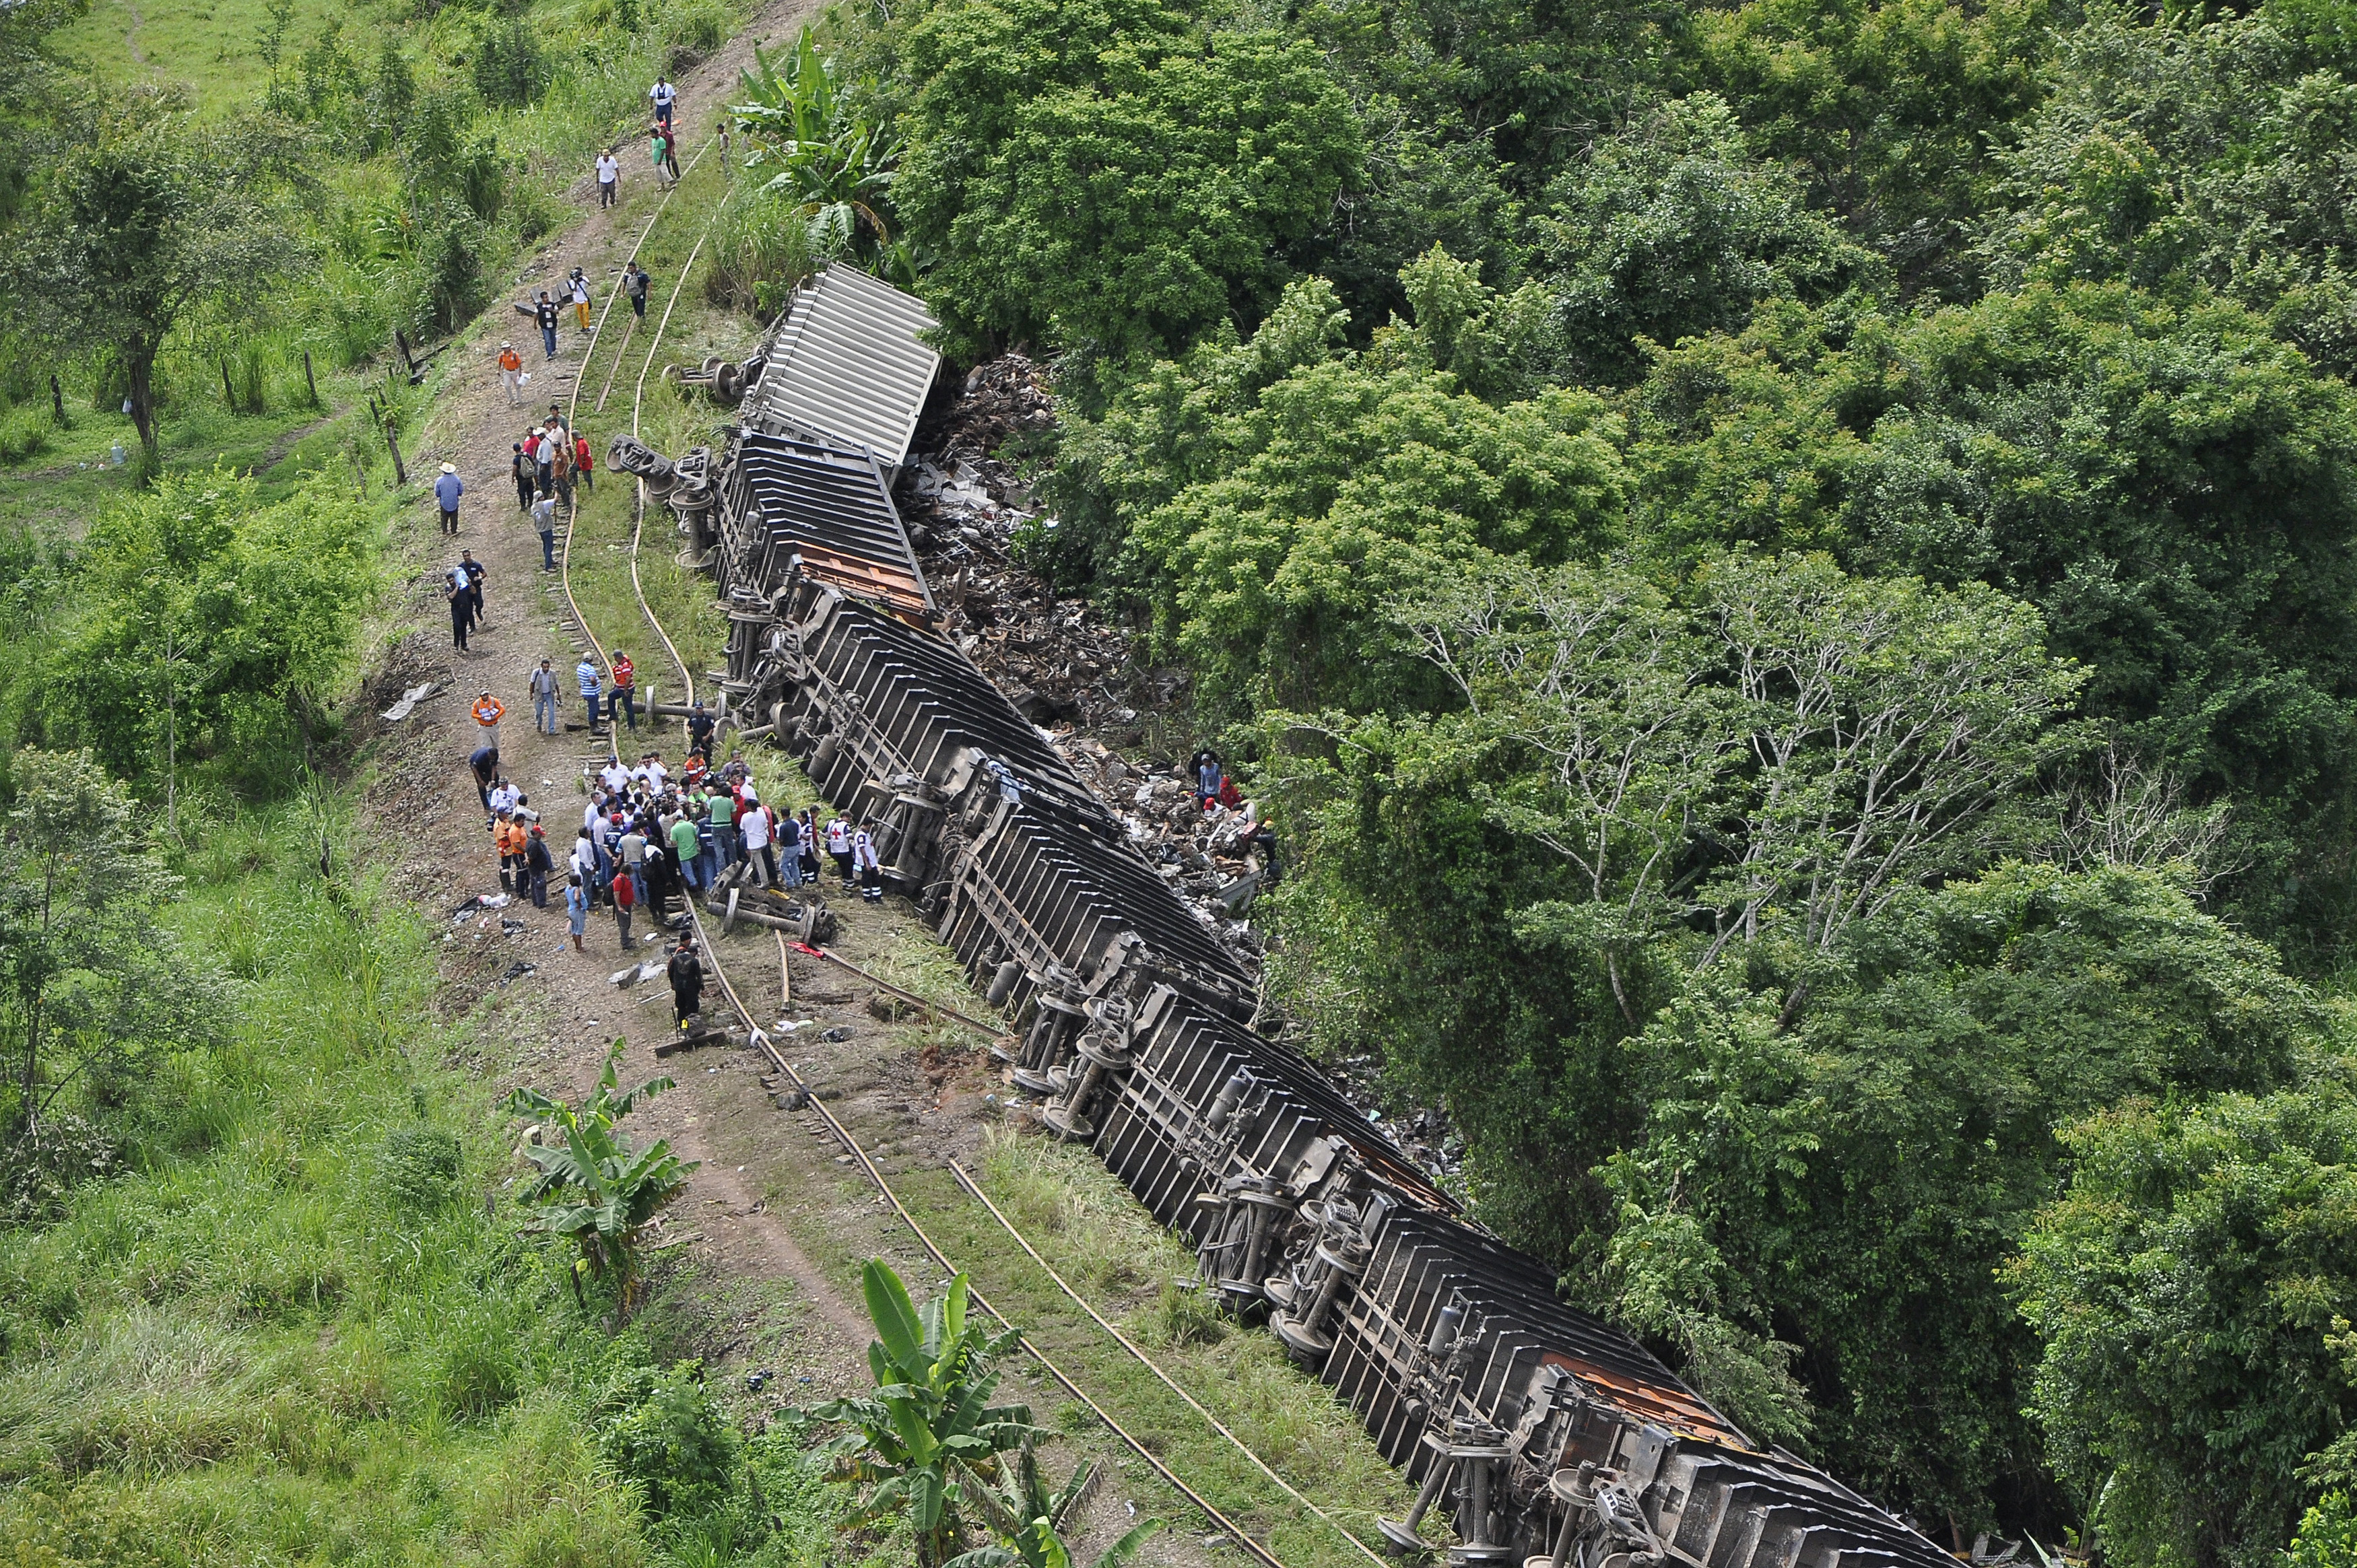 """Railroad workers and police investigators stand near the overturned carriages of a derailed train in Huimanguillo, in the Mexican state of Tabasco August 25, 2013. At least six people were killed when a cargo train nicknamed """"La Bestia,"""" or """"The Beast,"""" on which would-be migrants hitch rides toward the U.S. border, derailed in a remote area of southern Mexico on Sunday, state officials said. REUTERS/Luis Manuel Lopez"""